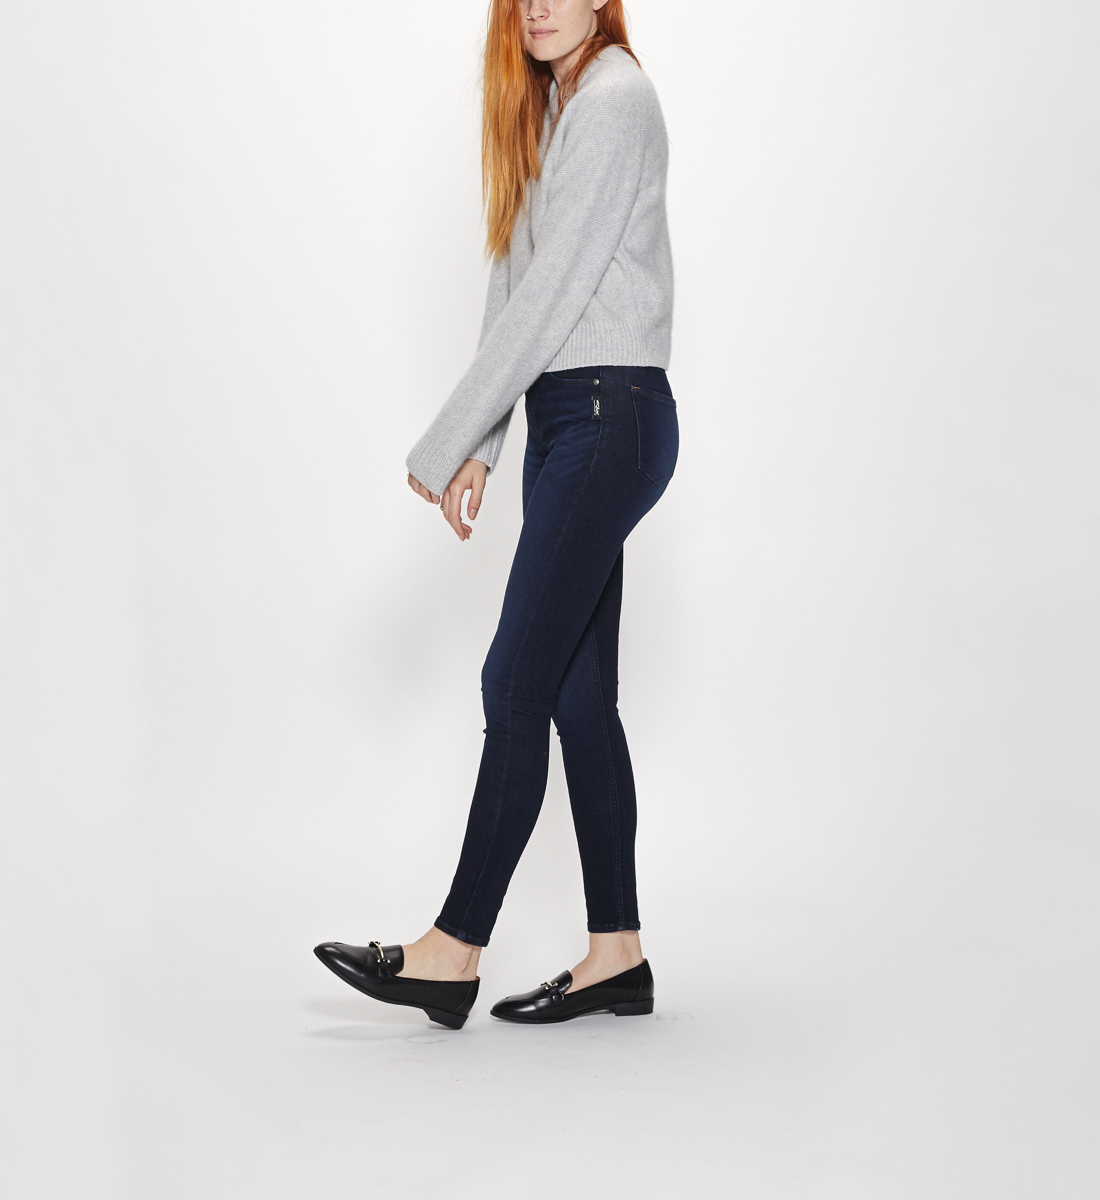 Mazy High Rise Skinny Leg Jeans Final Sale Alt Image 4